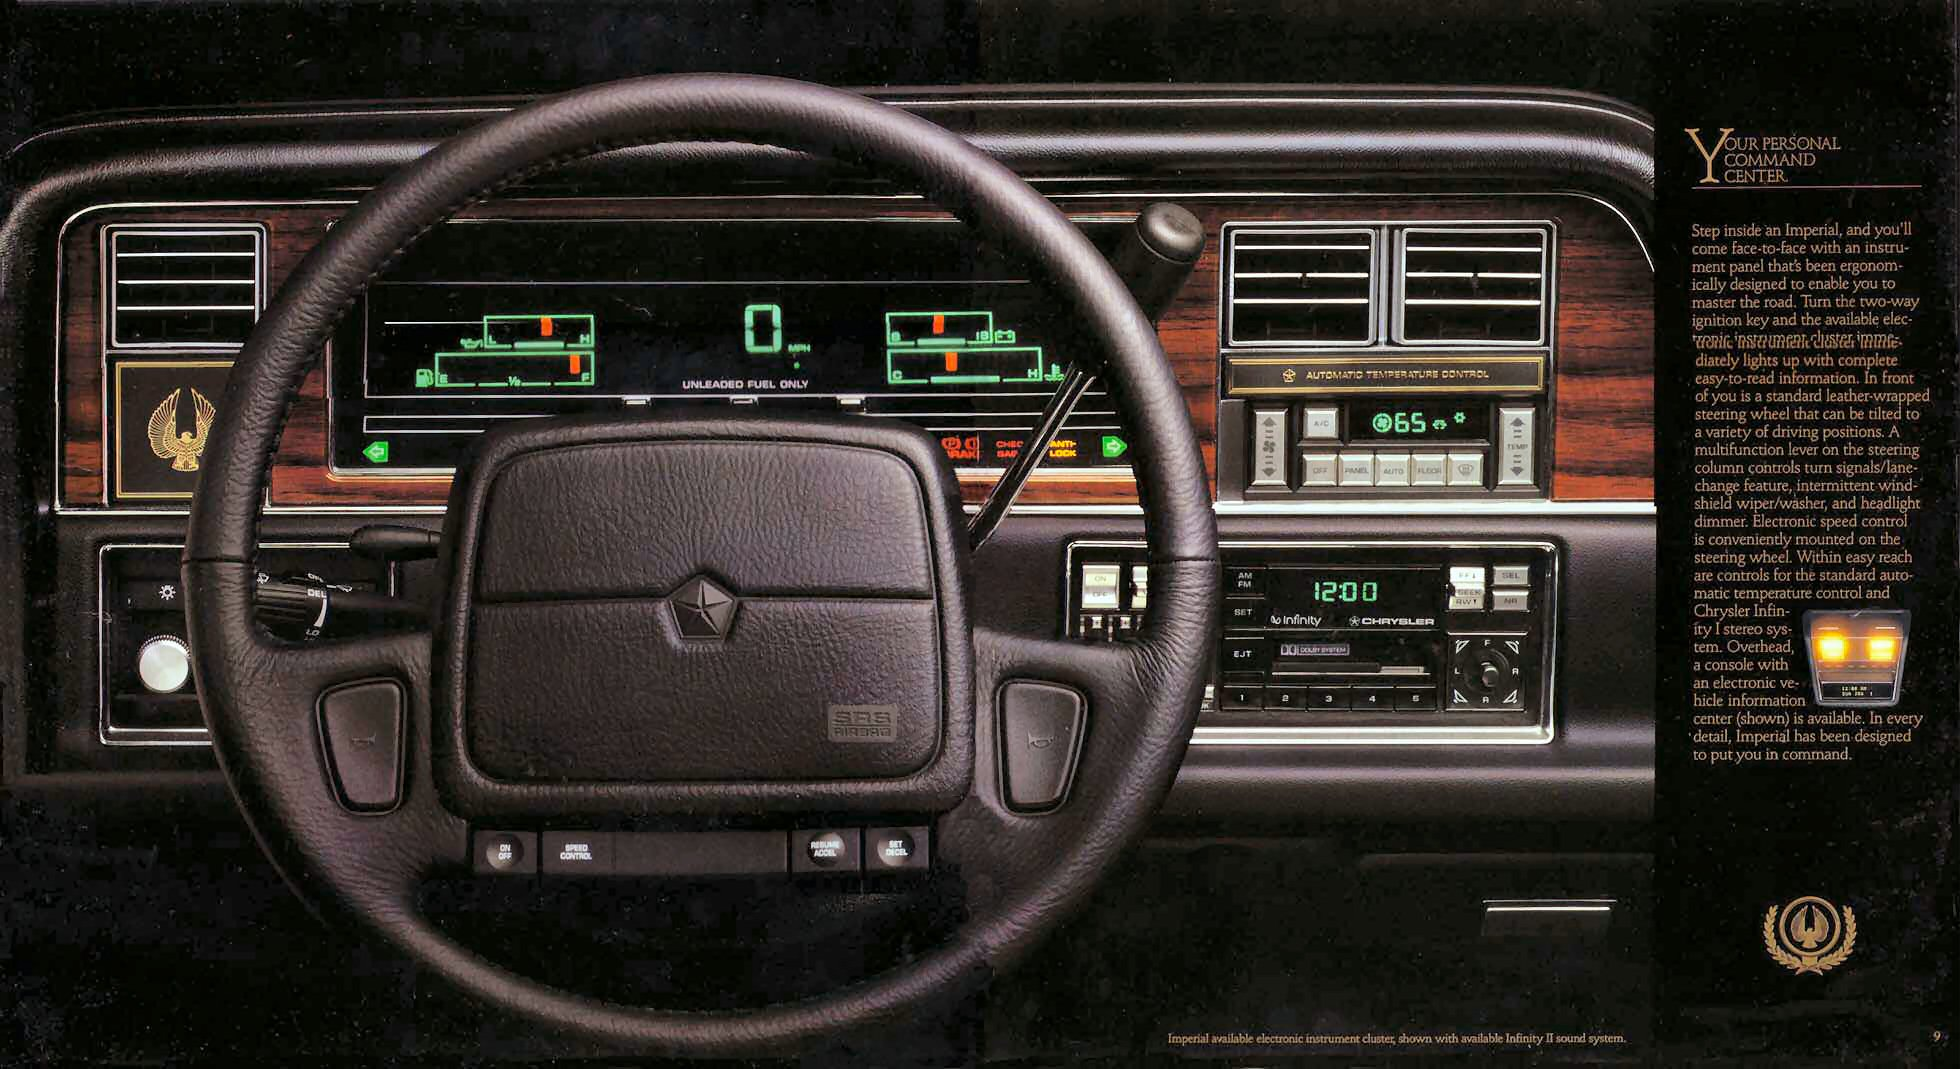 1990 Chrysler Imperial #19